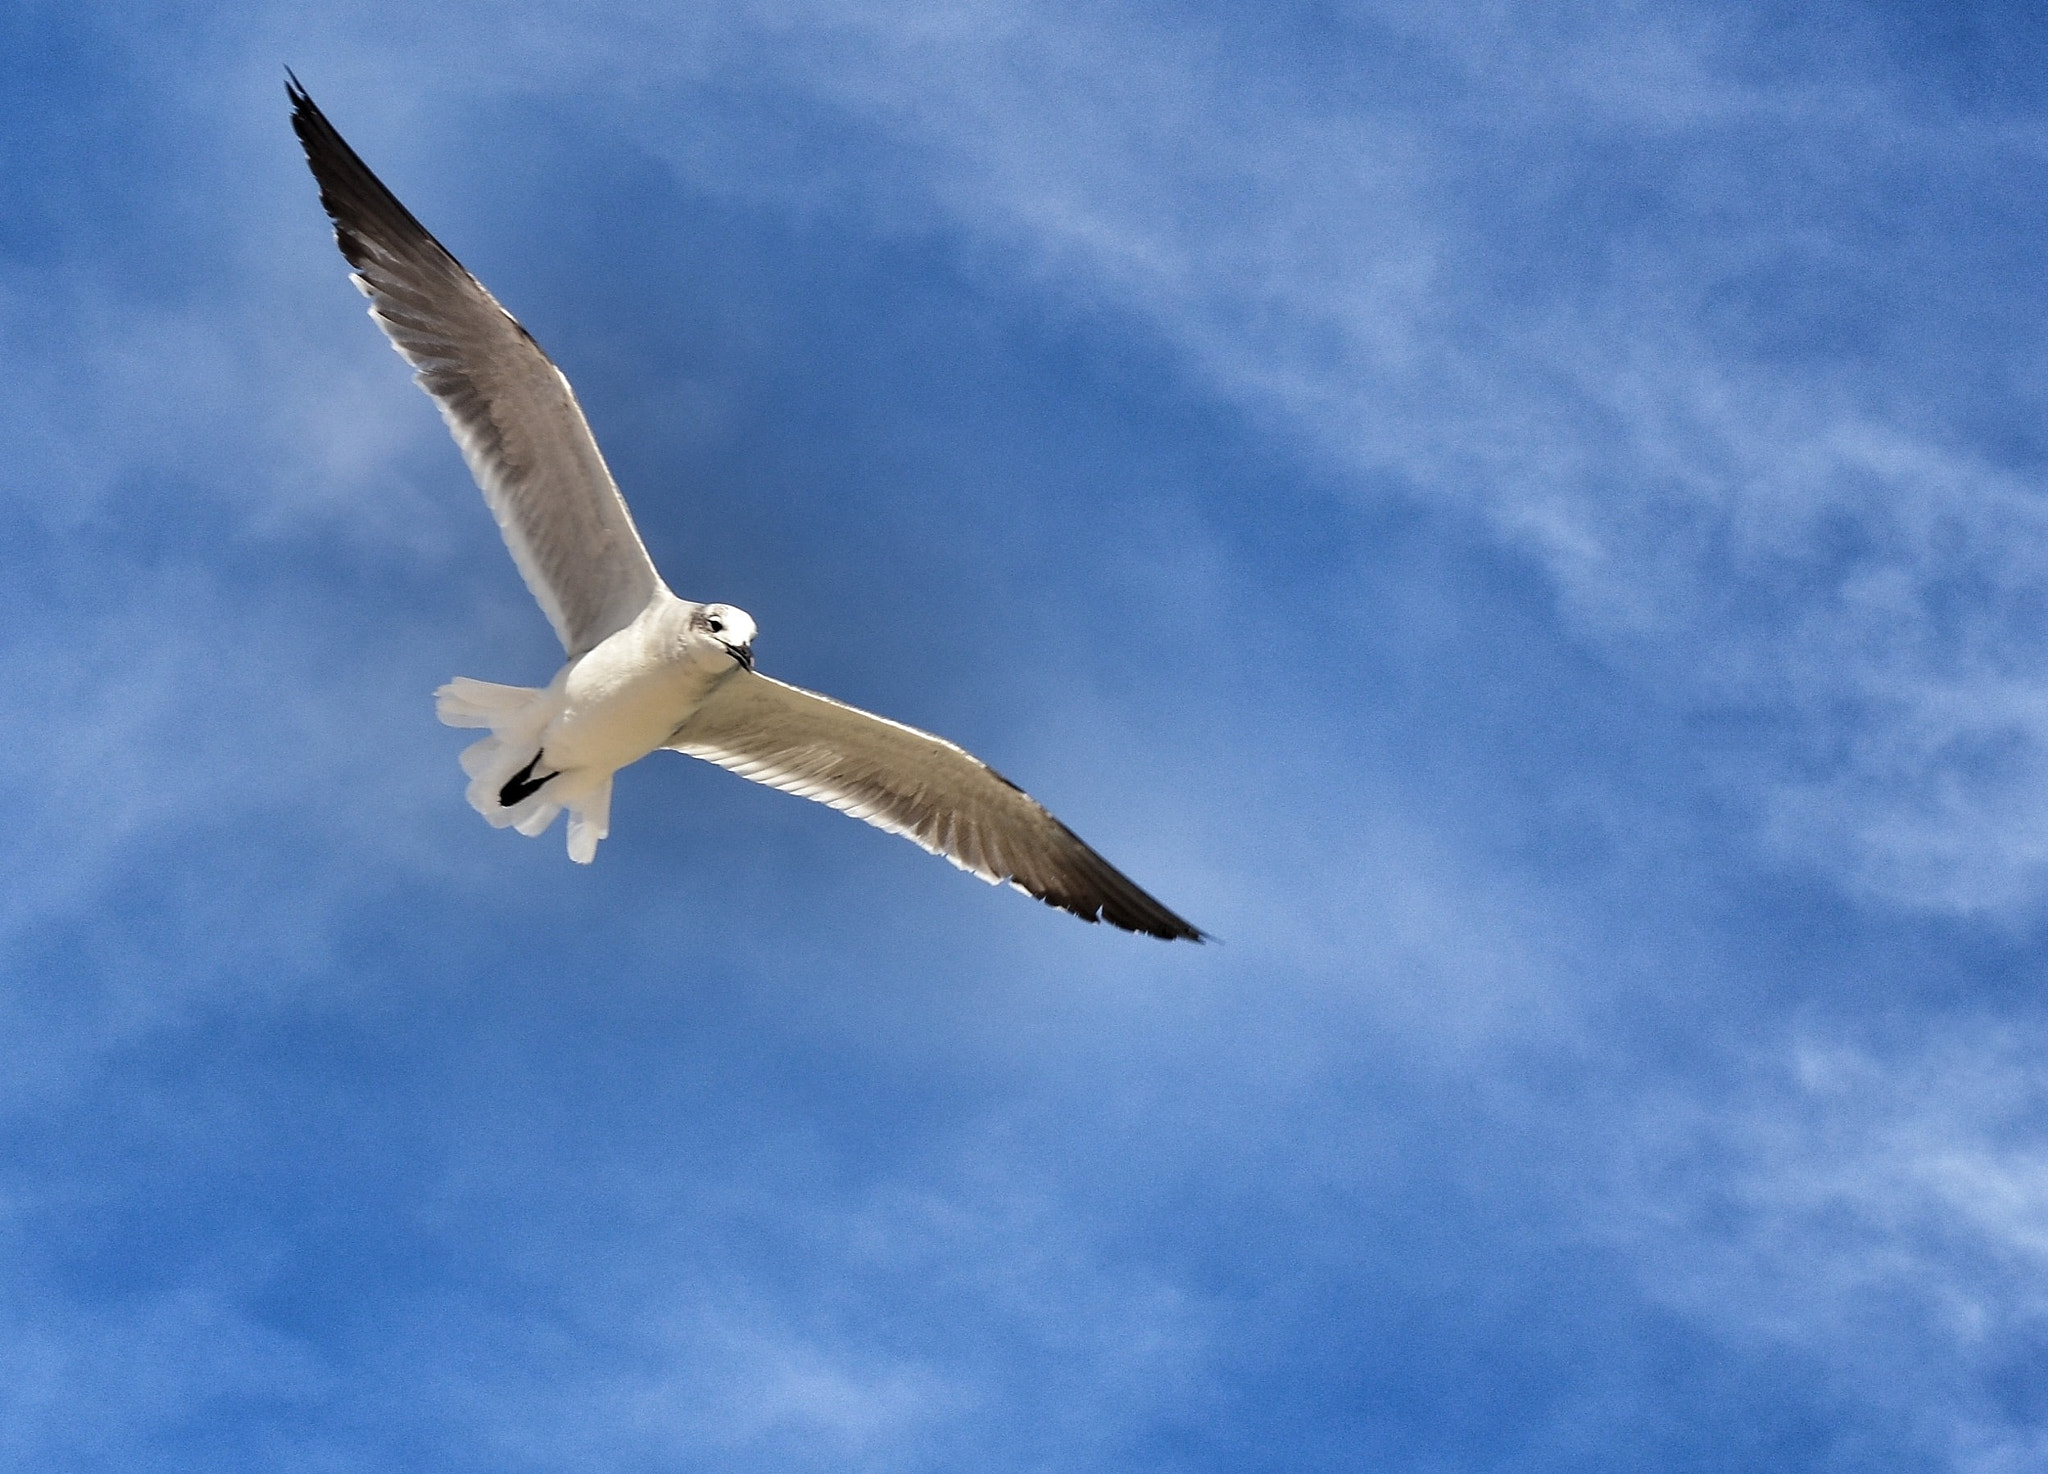 Photograph In Flight by Jeff Clow on 500px